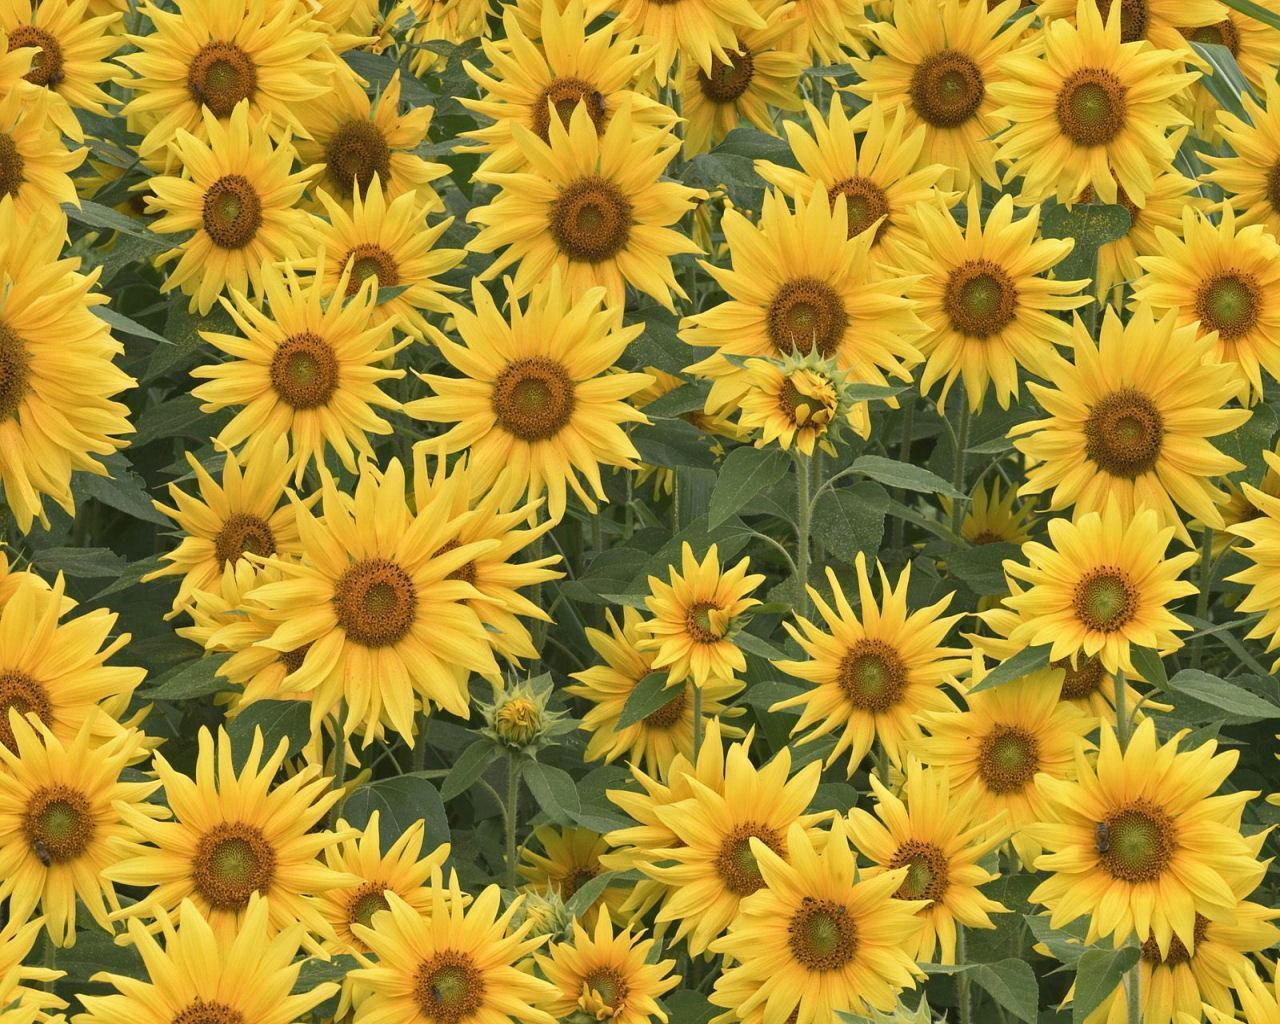 Sunflower clipart wallpaper Sunflowers eleletsitz: Sunflowers Tumblr Background